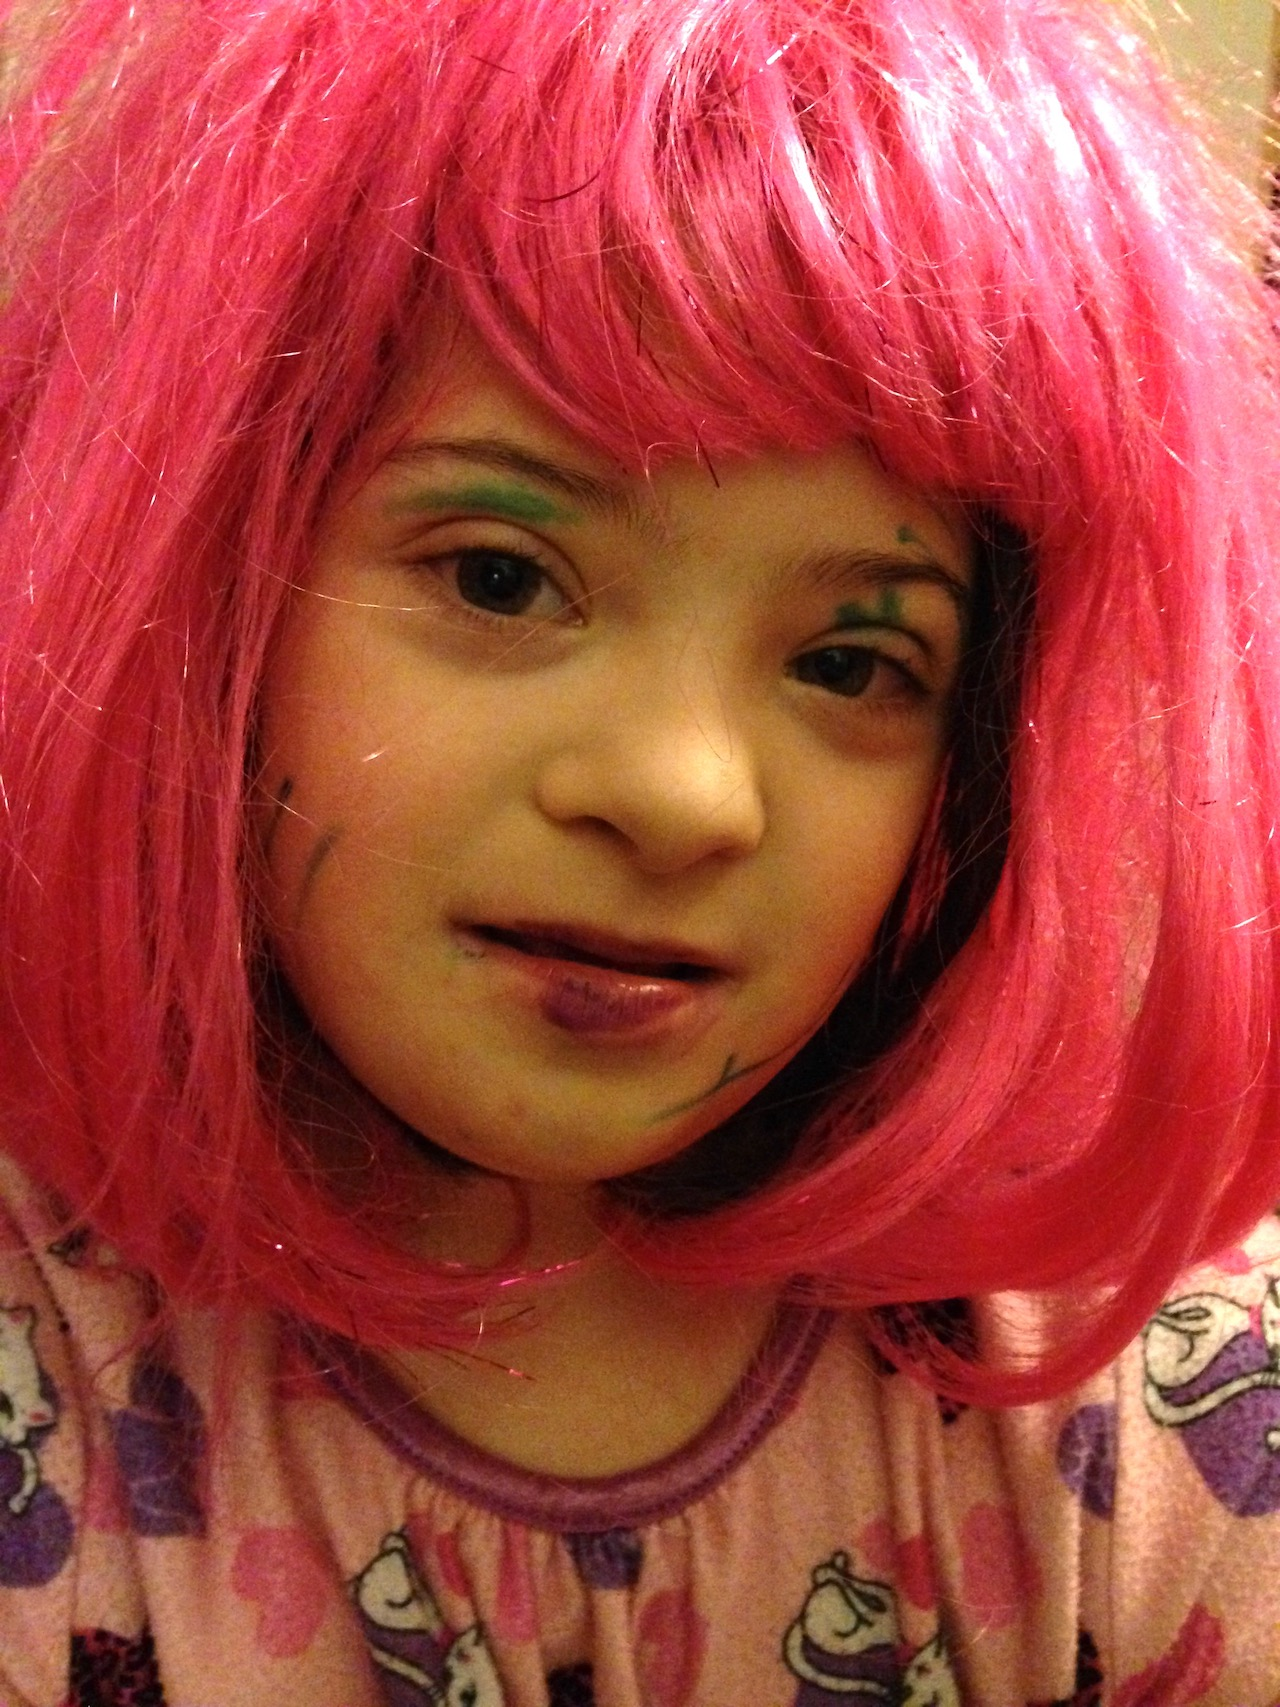 Little girl with pink wig and markers on her face for eyeshadow and lipstick